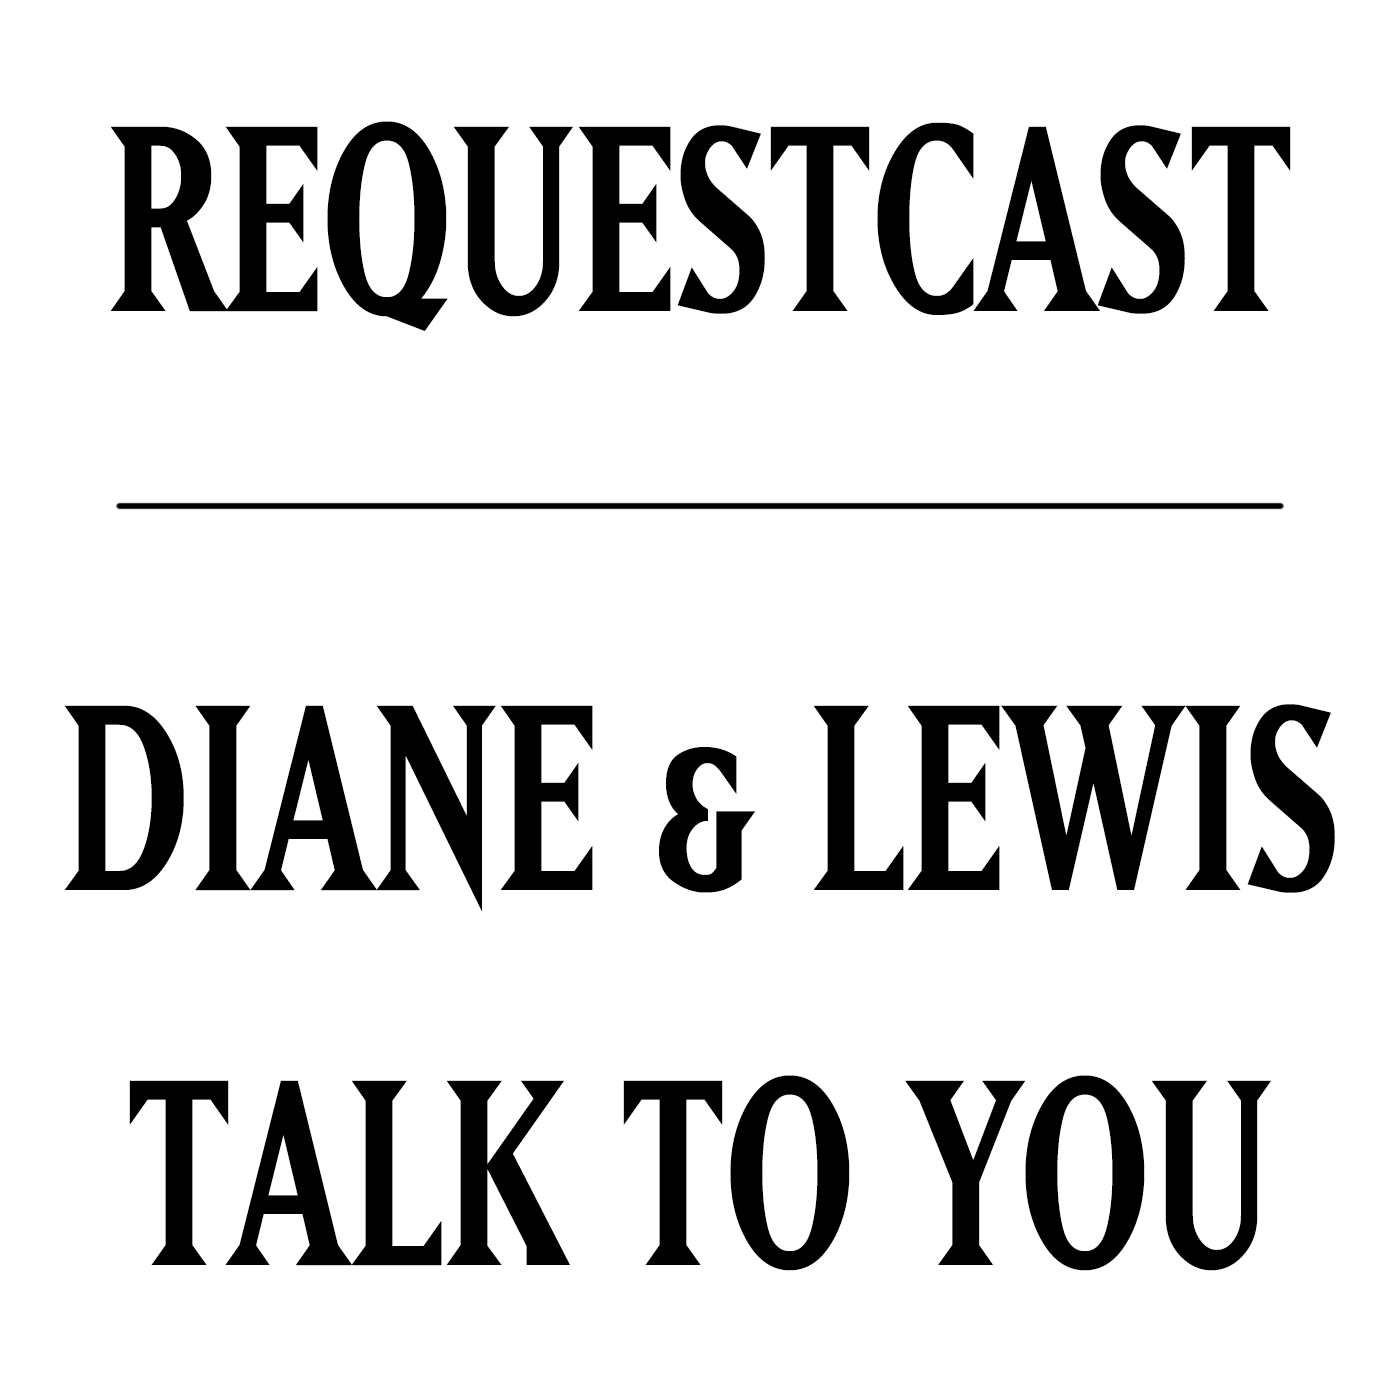 RequestCast